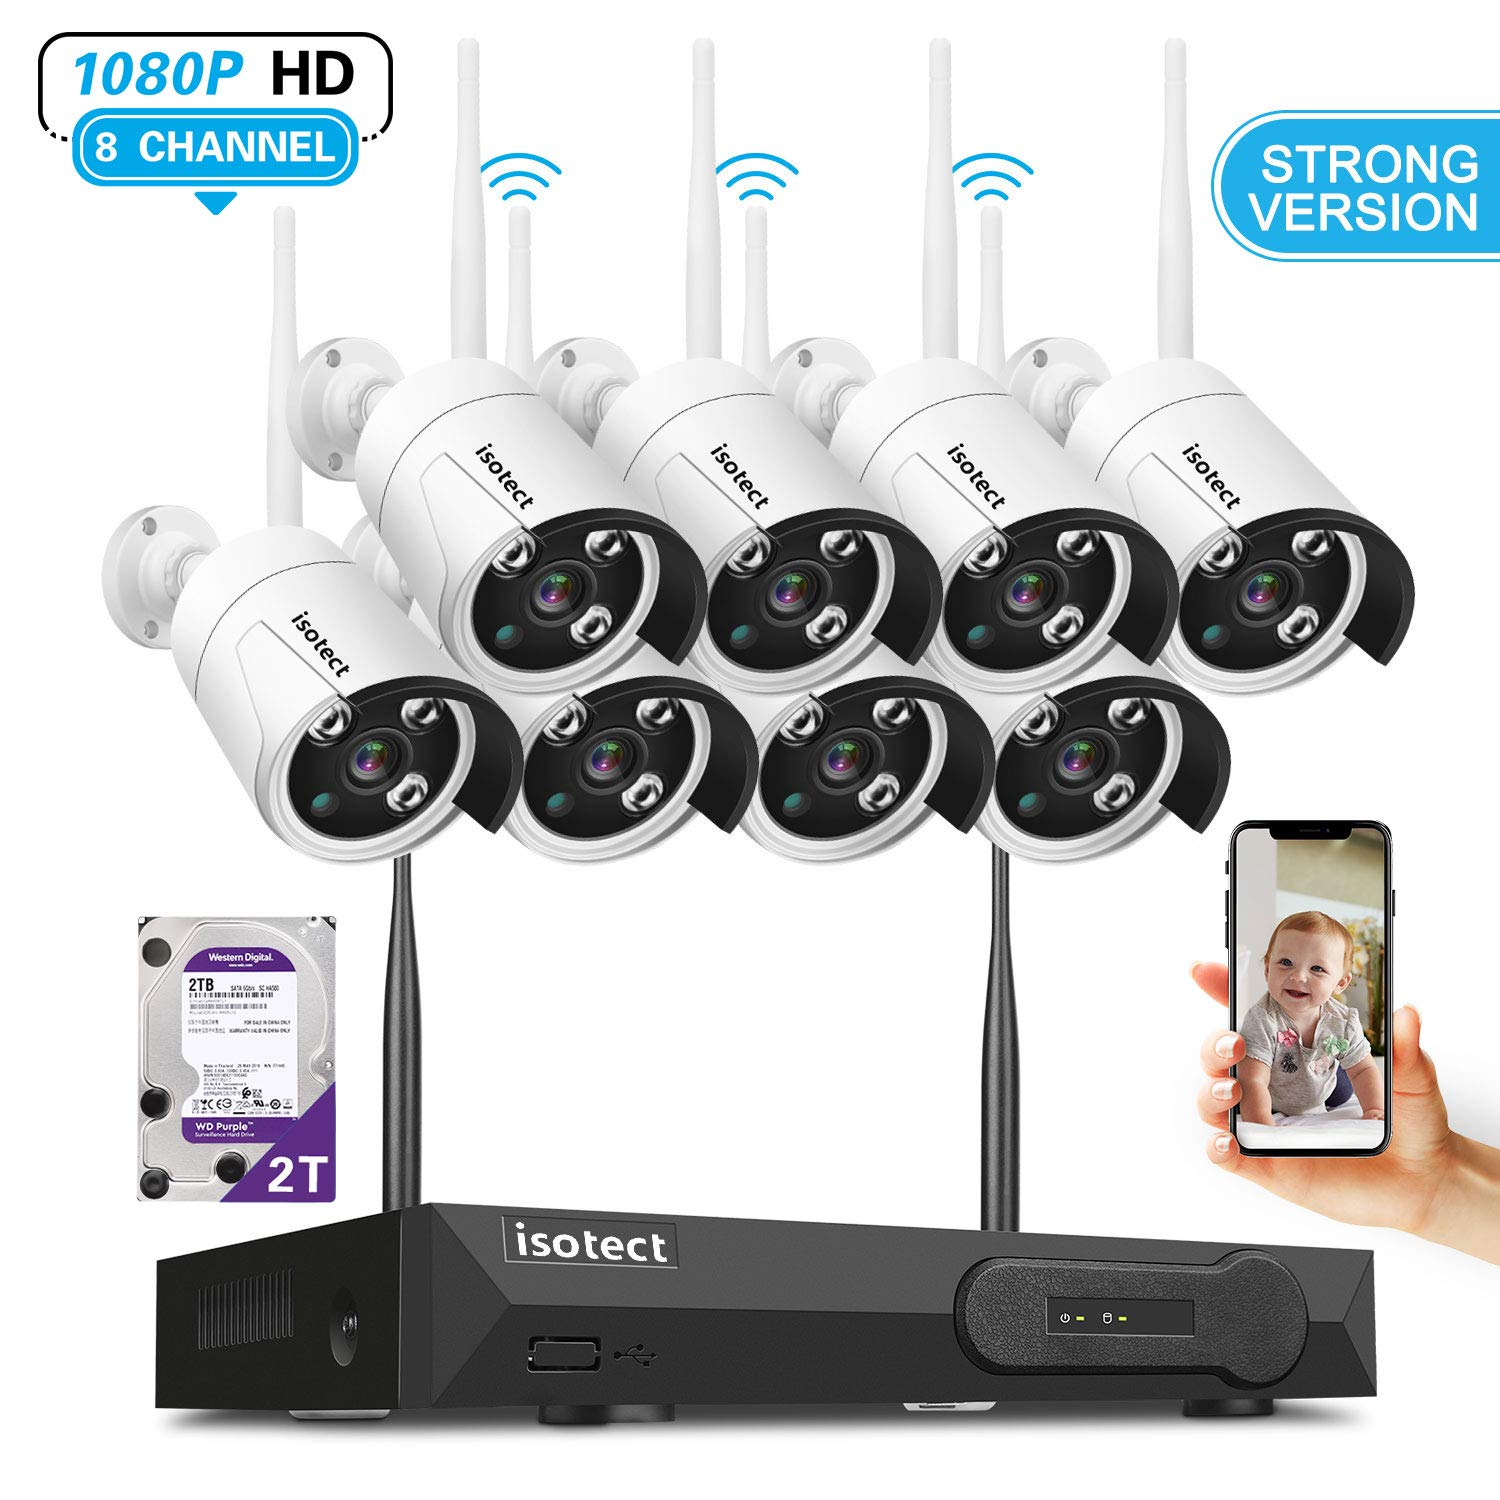 [Newest Strong Version WiFi] Wireless Security Camera System, ISOTECT 8CH Full HD 1080P Video Security System, 8pcs Outdoor/Indoor IP Security Cameras, 65ft Night Vision and Easy Remote View, 2TB HDD by isotect